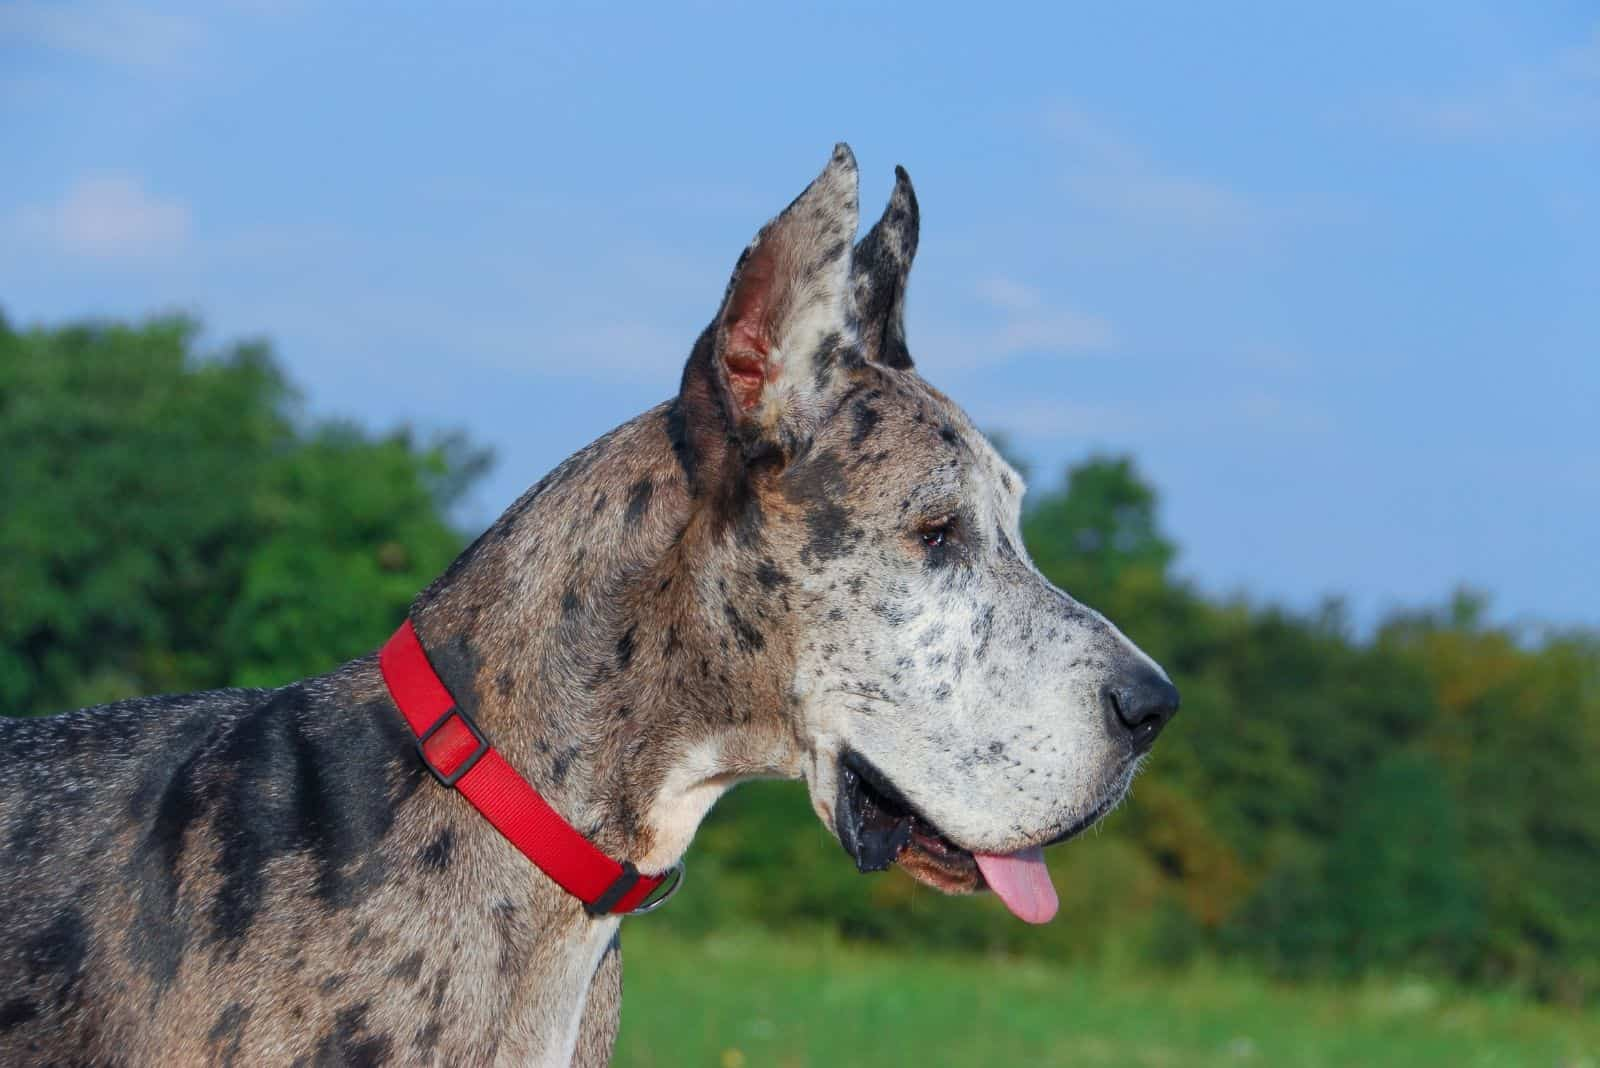 picture of a great dane mix dog in sideview standing outdoors